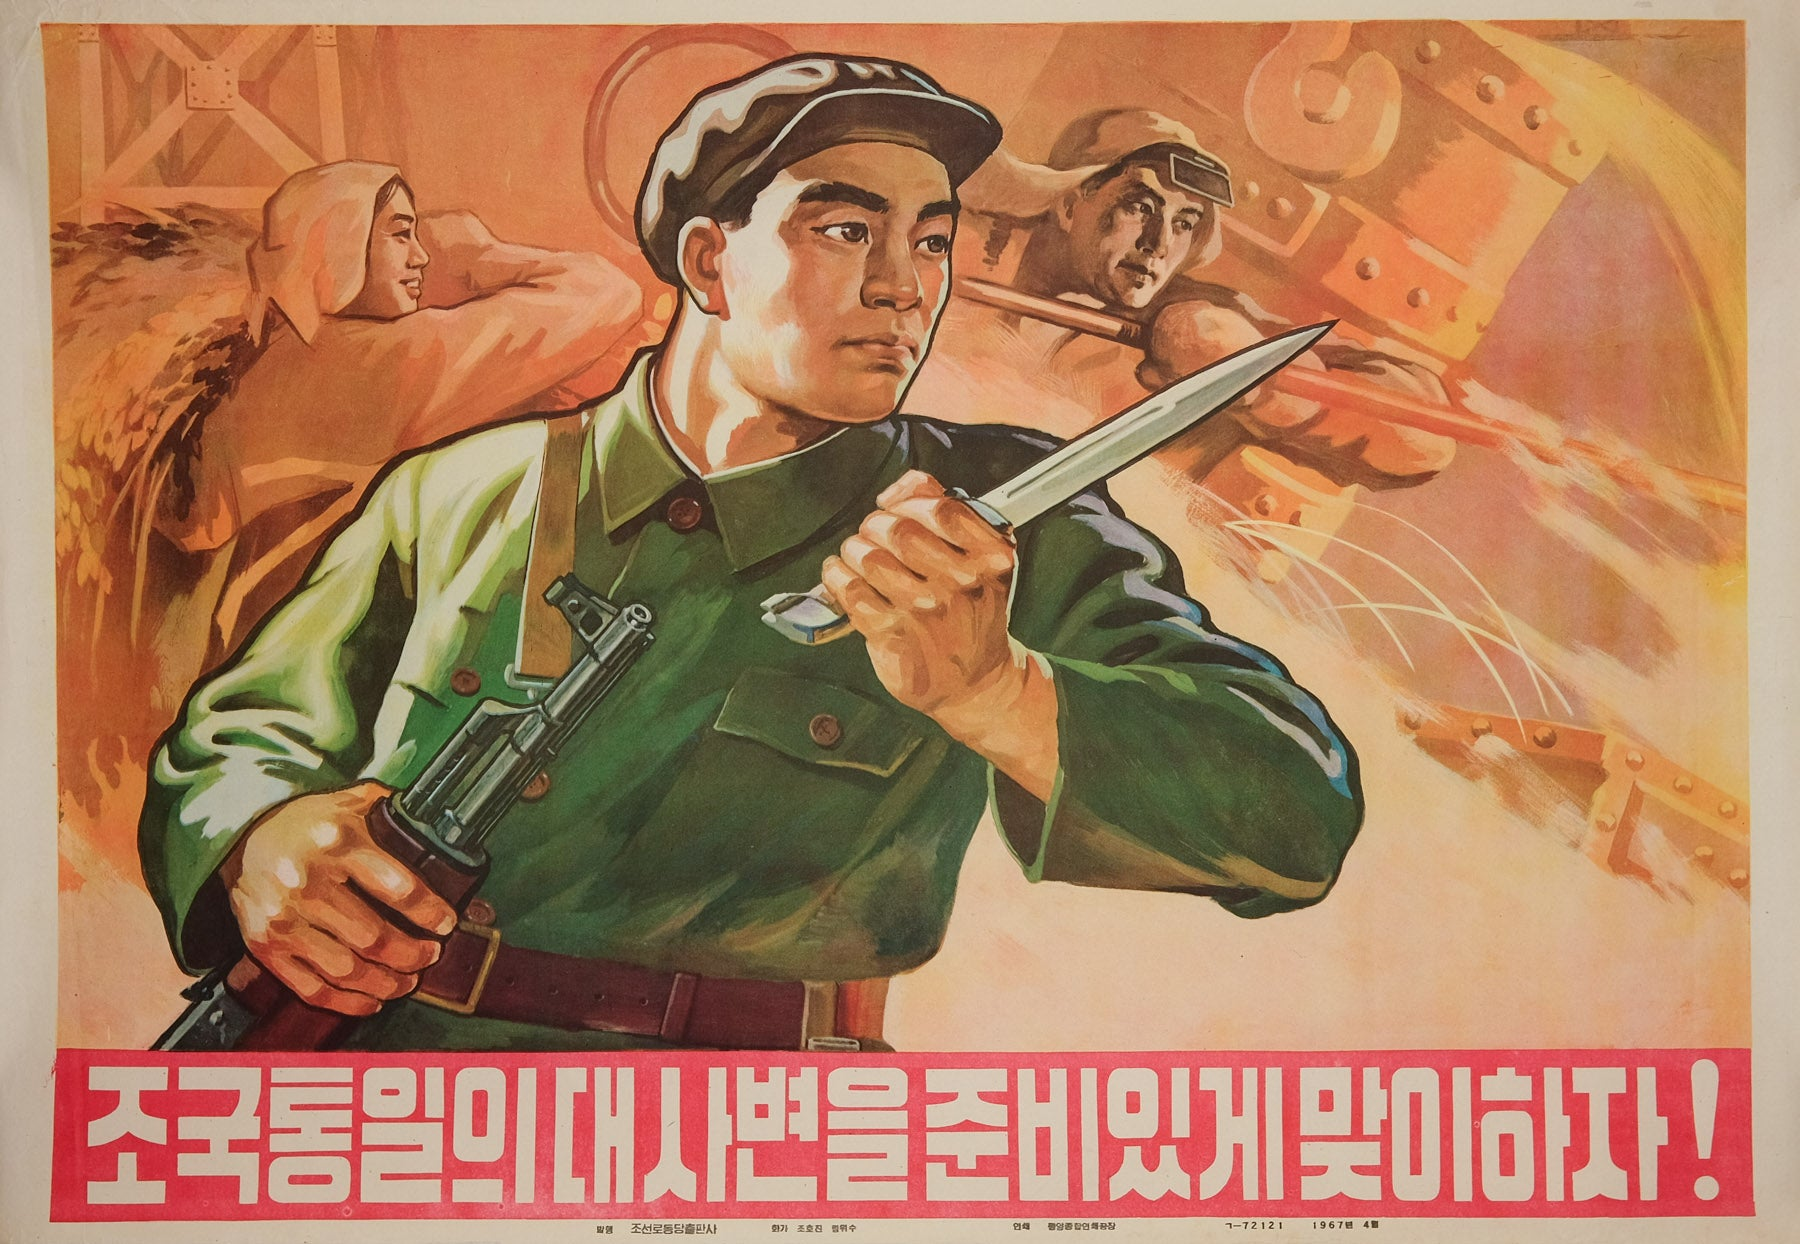 image of 1967 vintage original North Korean communist propaganda poster titled Let's prepare well for for the great war of reunification!